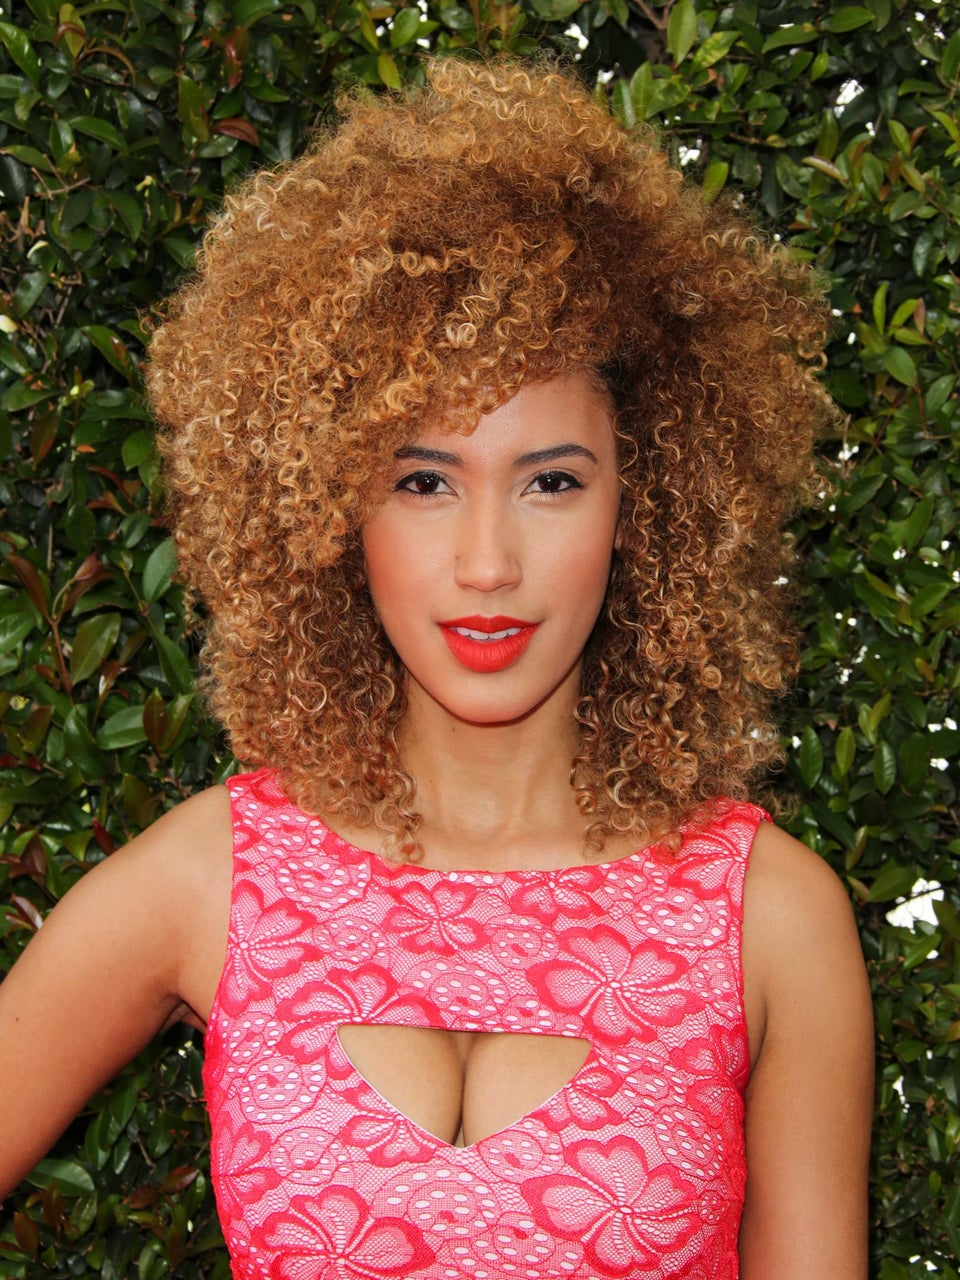 Andy Allo Talks What It Means to Be a #Fronatic